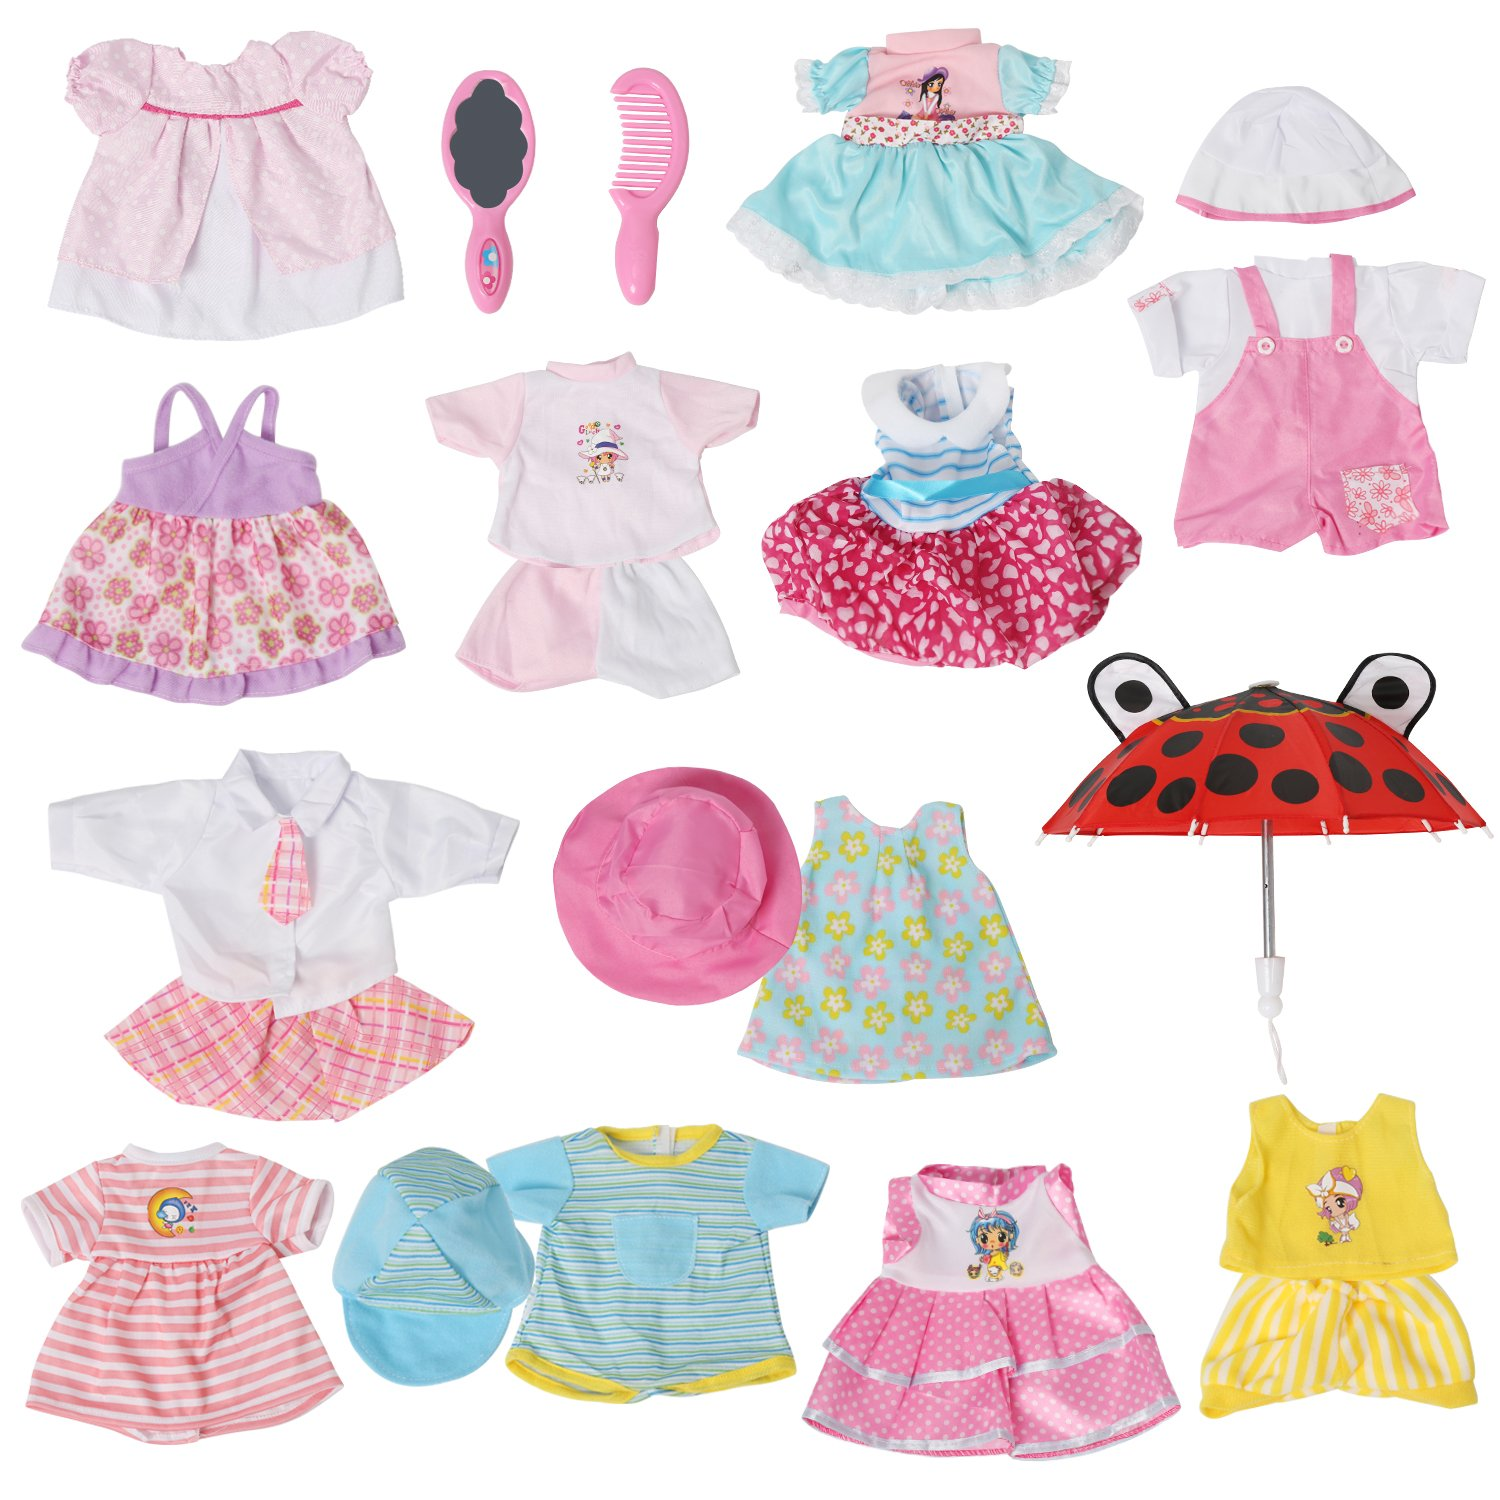 Newborn Baby Doll Clothes 2017 BabyKis